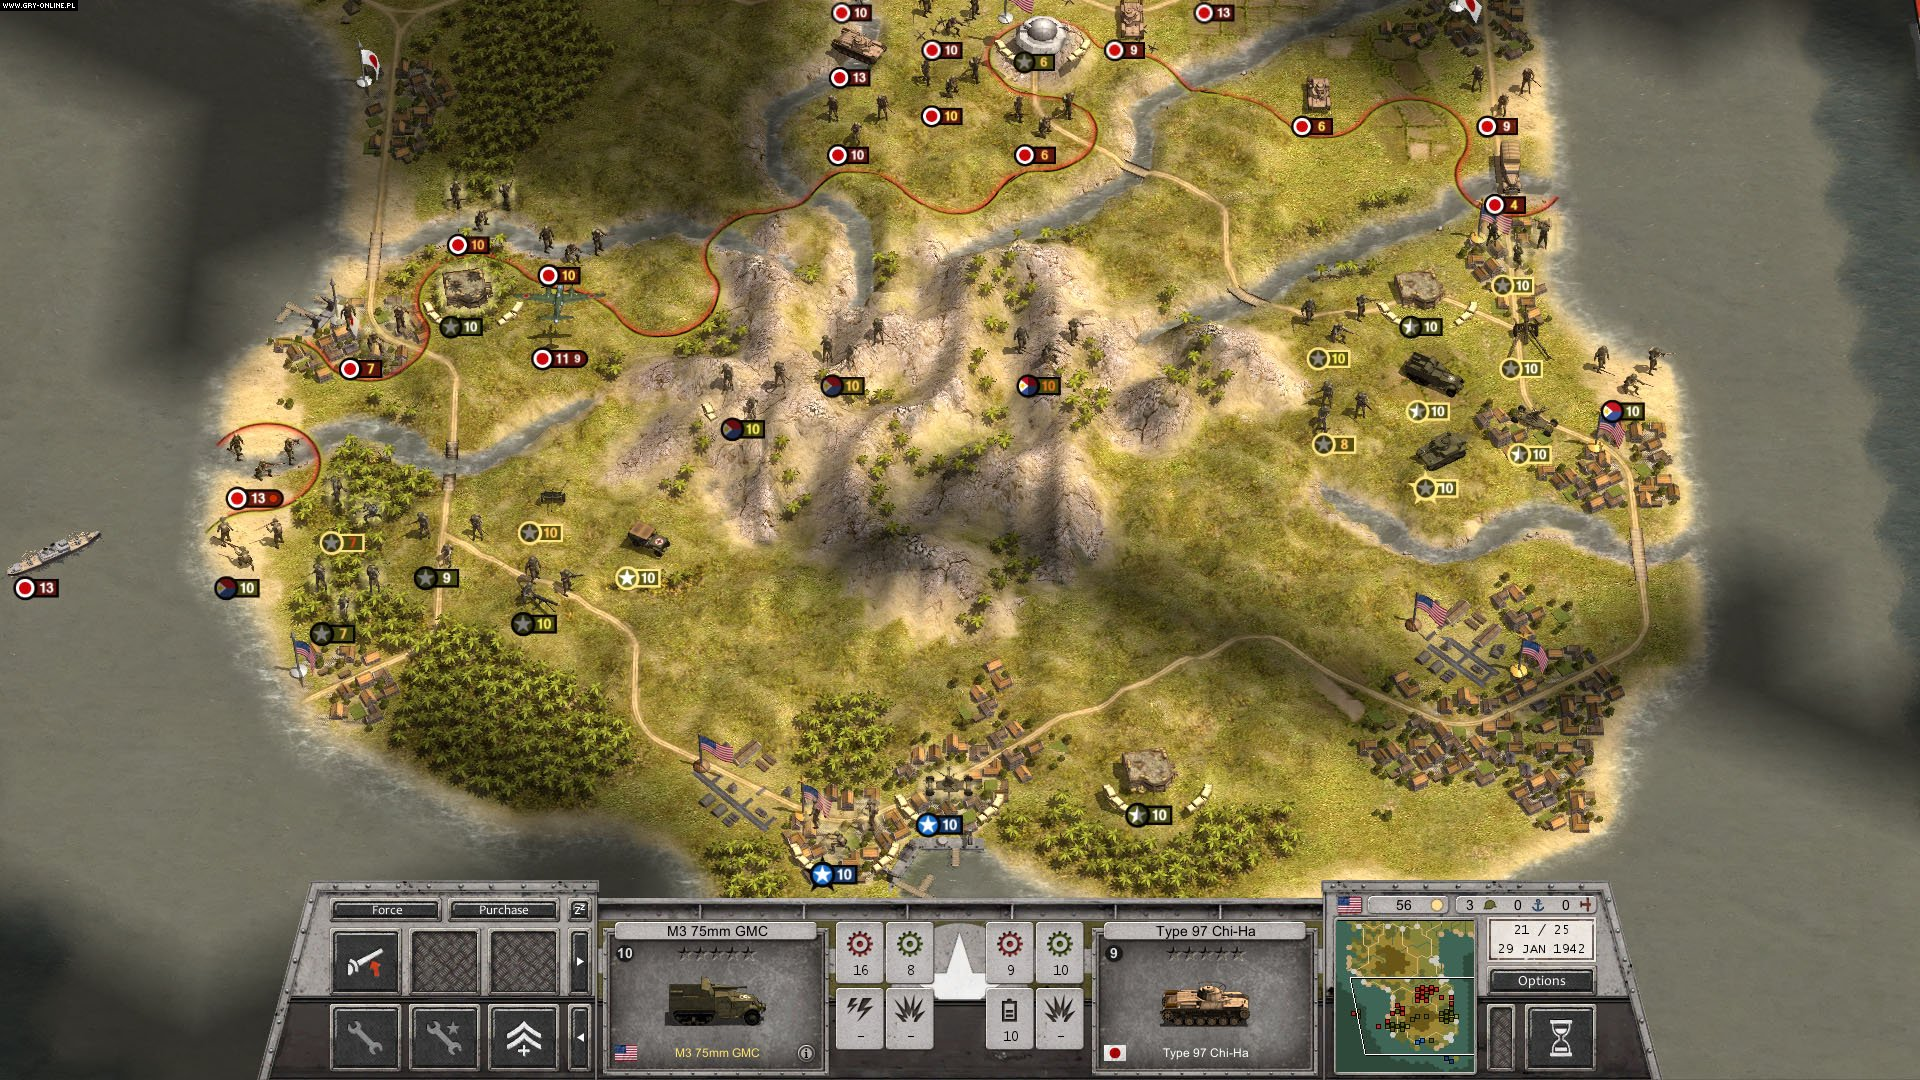 Page 2 of 24 for 25 Best Military Strategy Games For PC